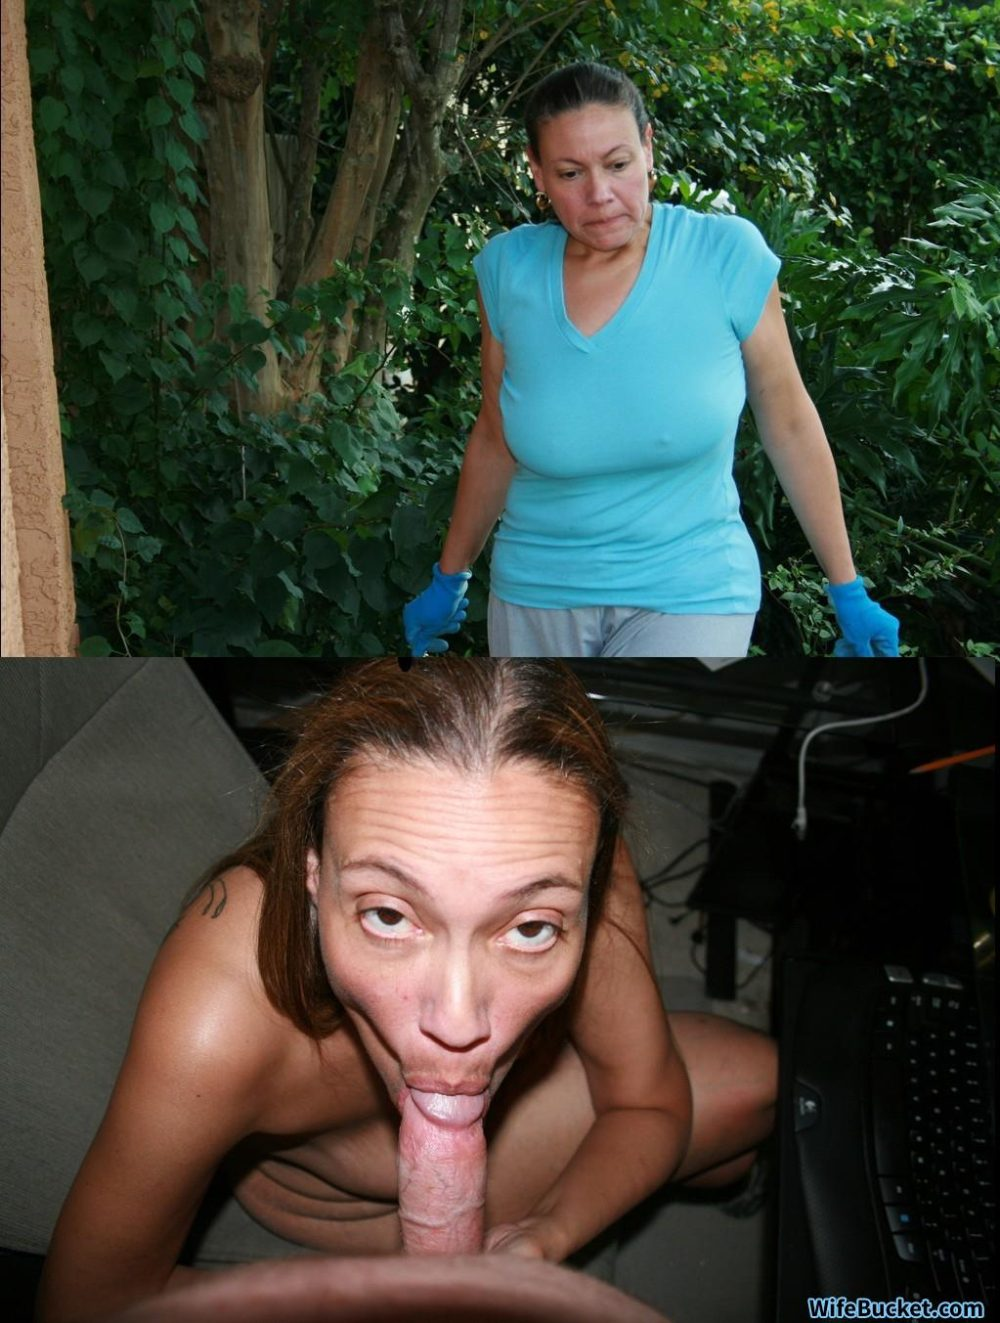 Hot MILF before and after sucking cock